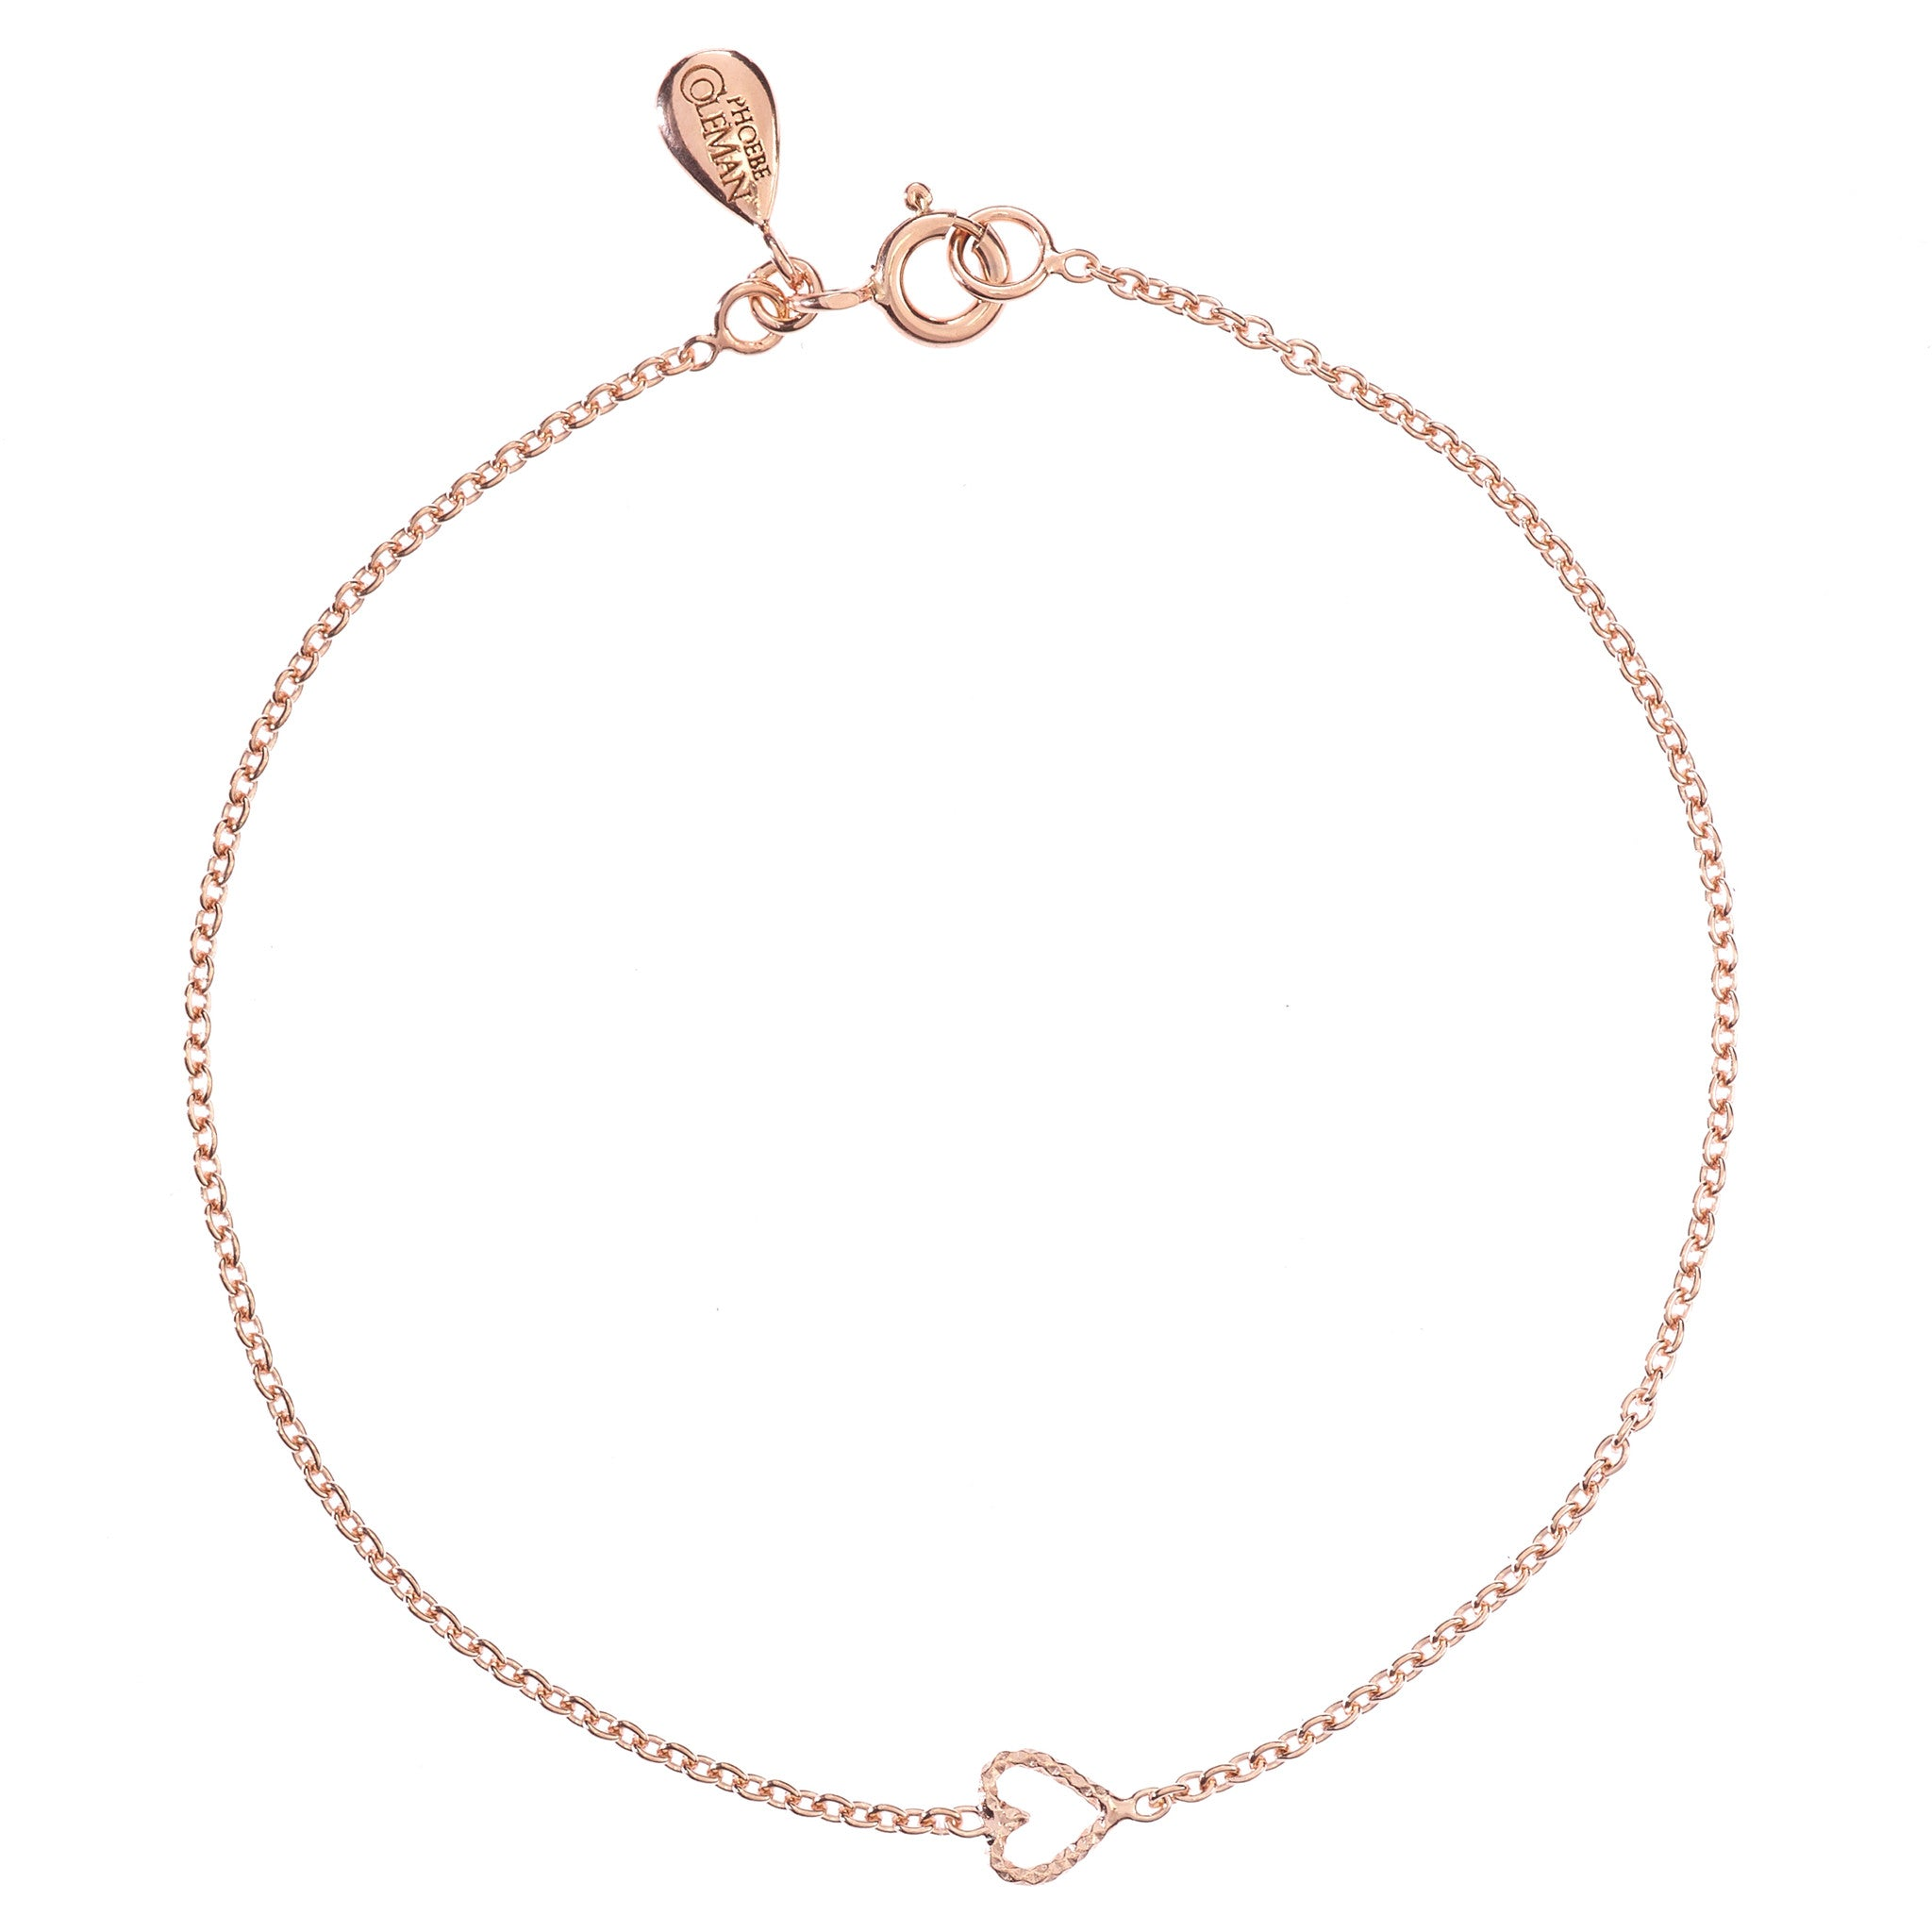 zoom bracelet a bracelets in print silver rose gold simply paw bangles heart plated jewellery sterling